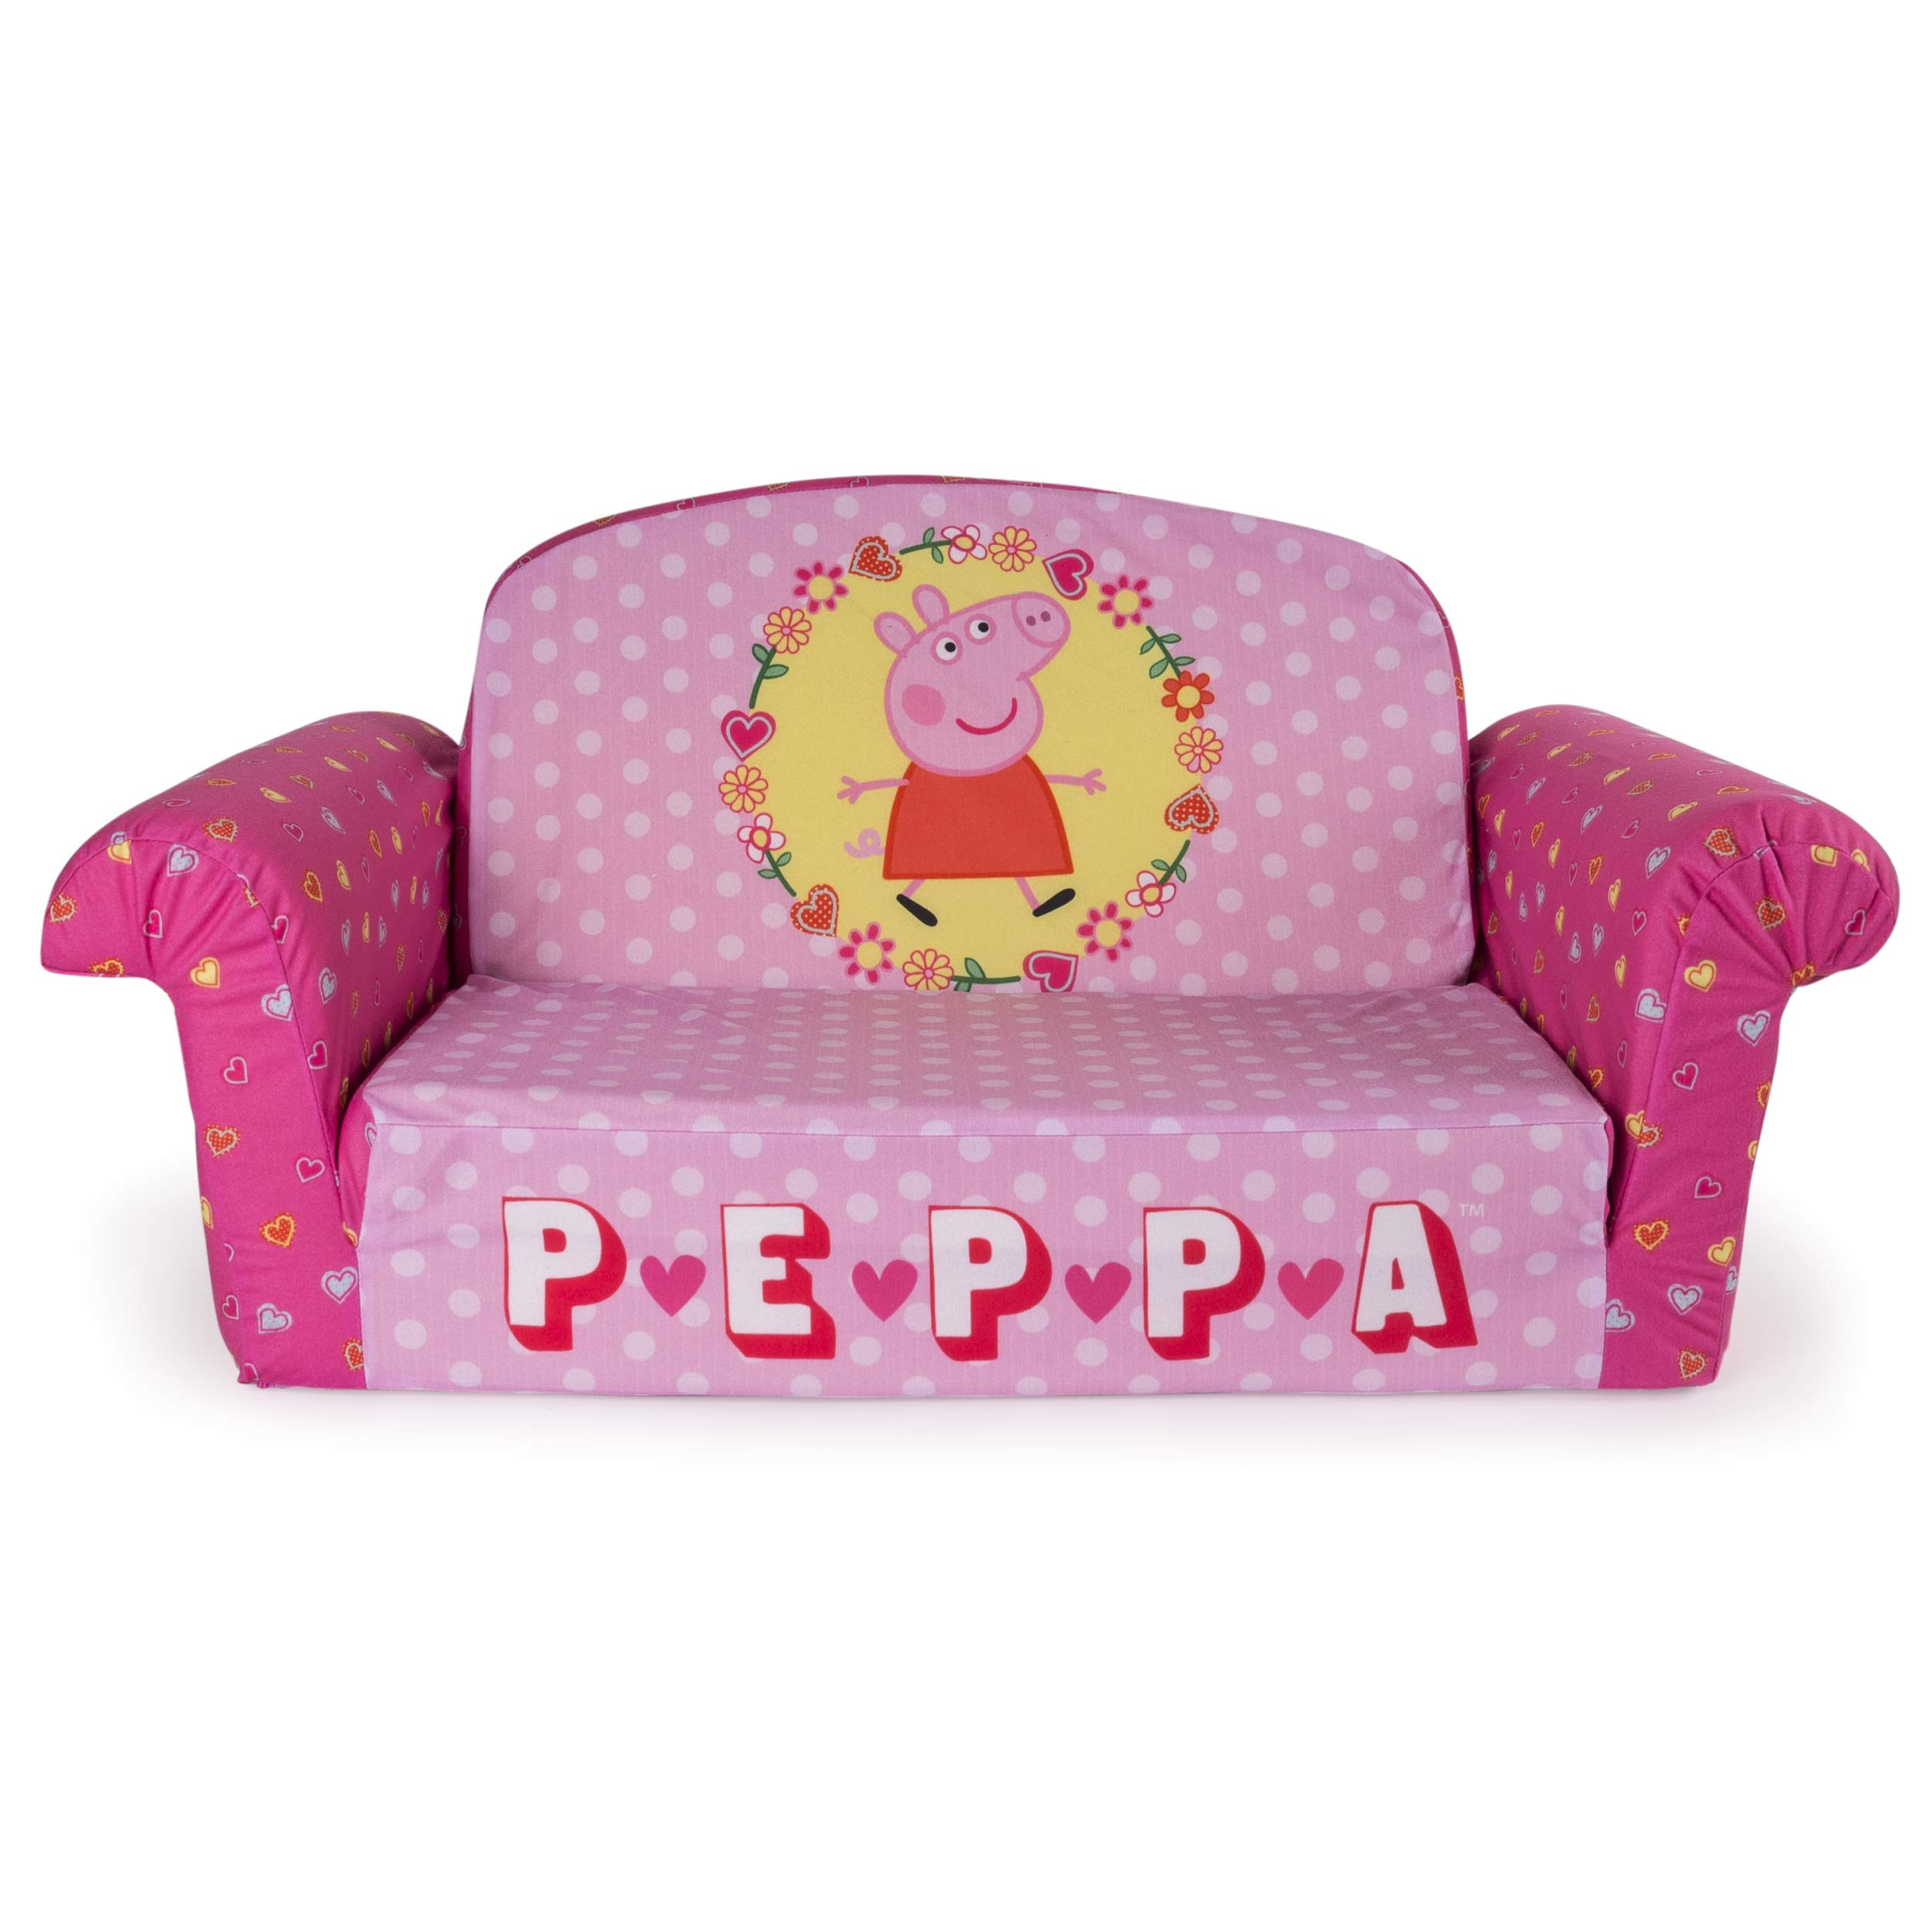 Marshmallow Furniture, Children's 2 in 1 Flip Open Foam Sofa, Peppa Pig, by Spin Master